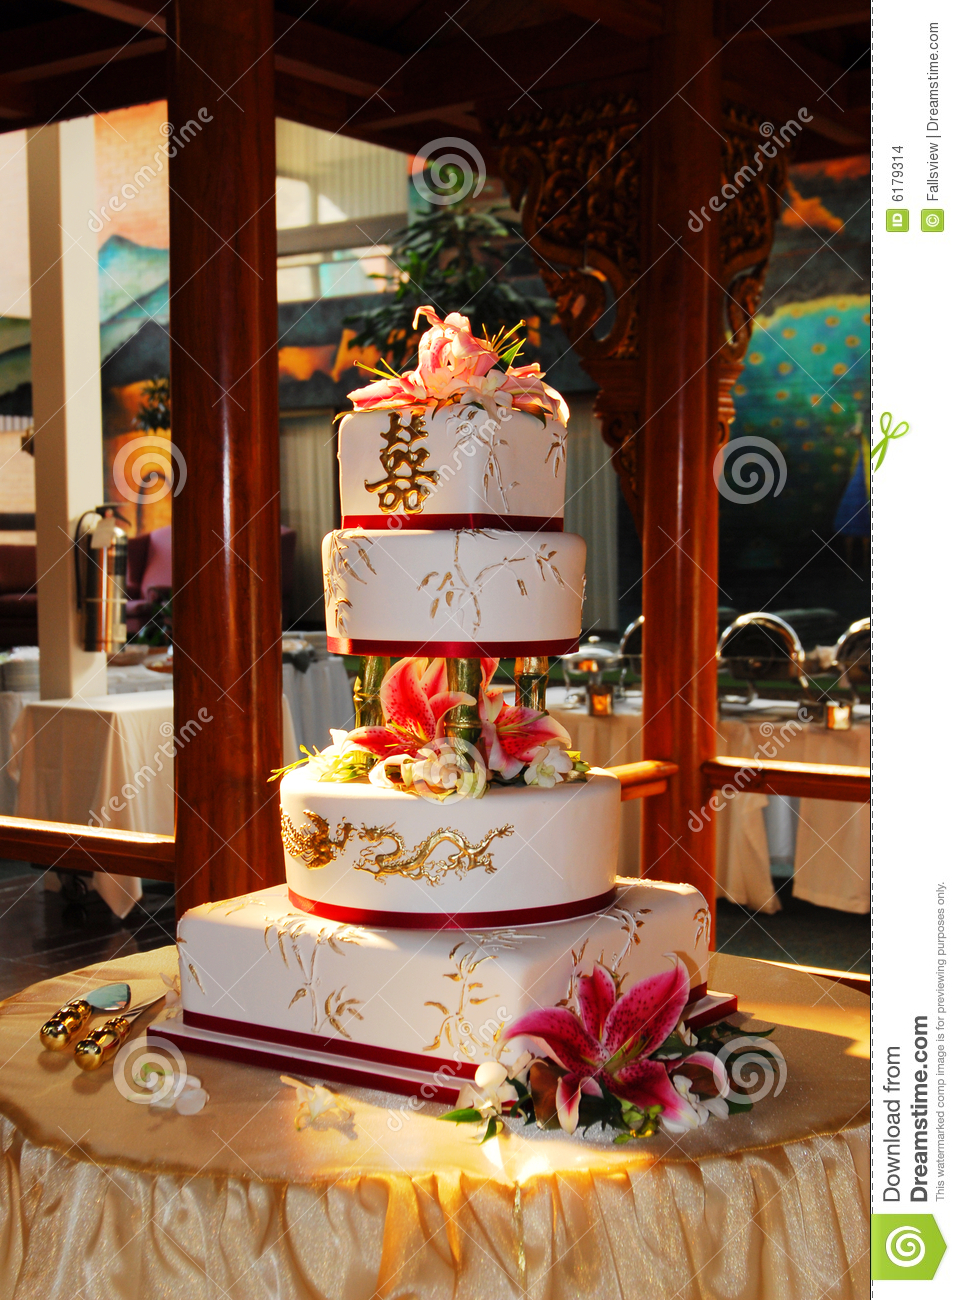 chinese wedding cake 6179314 - Asian Wedding Cake Stands